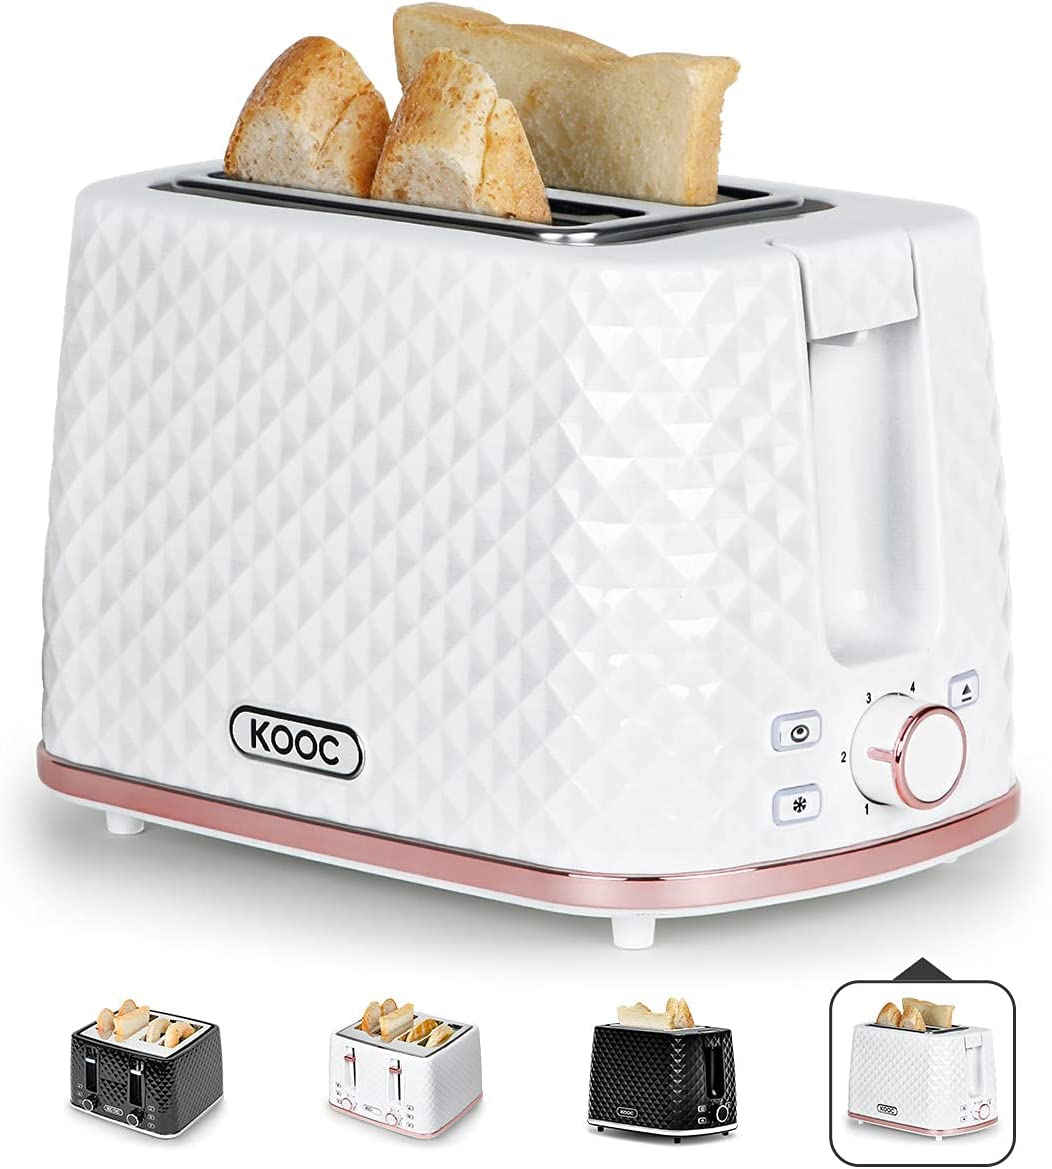 [NEW LAUNCH] KOOC Toaster 2 Slice, 1.5-inch Extra-Wide Slot for Evenly Toast, 6 Shade Settings, Bagel/Defrost/Cancel in 1, Stainless Steel Inner, Removable Crumb Tray, Bonus Exclusive Recipes, White